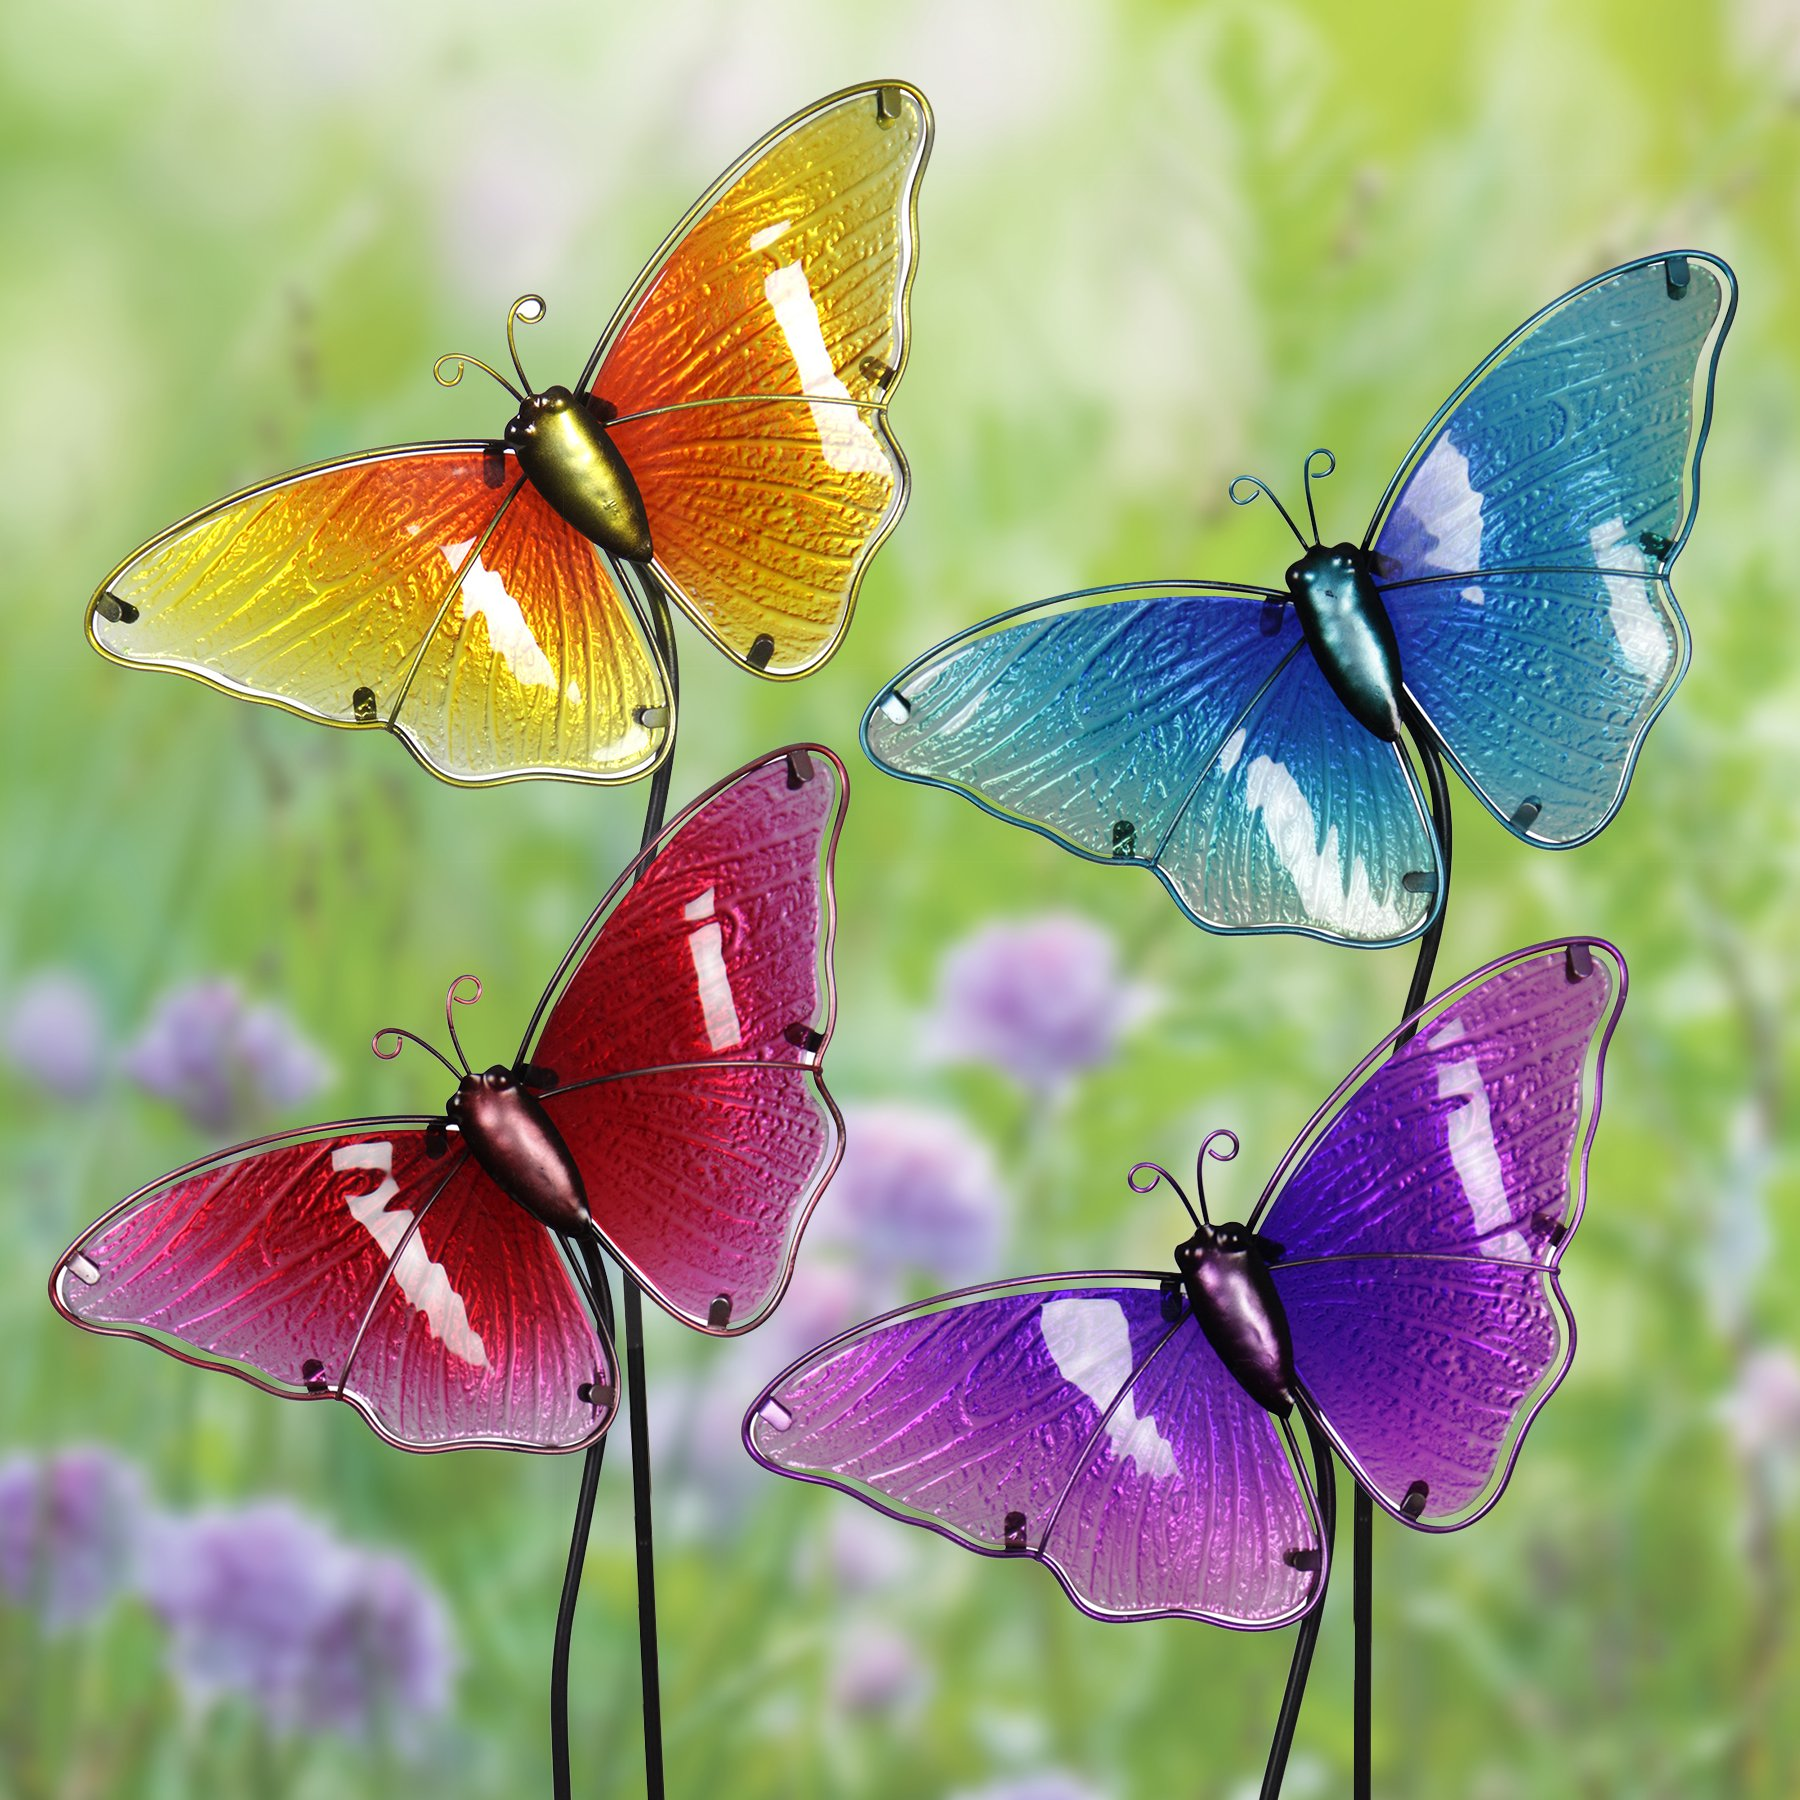 Exhart Butterfly Garden Stakes, Glass, Set of 4, Red Yellow Turquoise Purple, 8.75'' L x 1.25'' W x 26'' H by Exhart (Image #2)